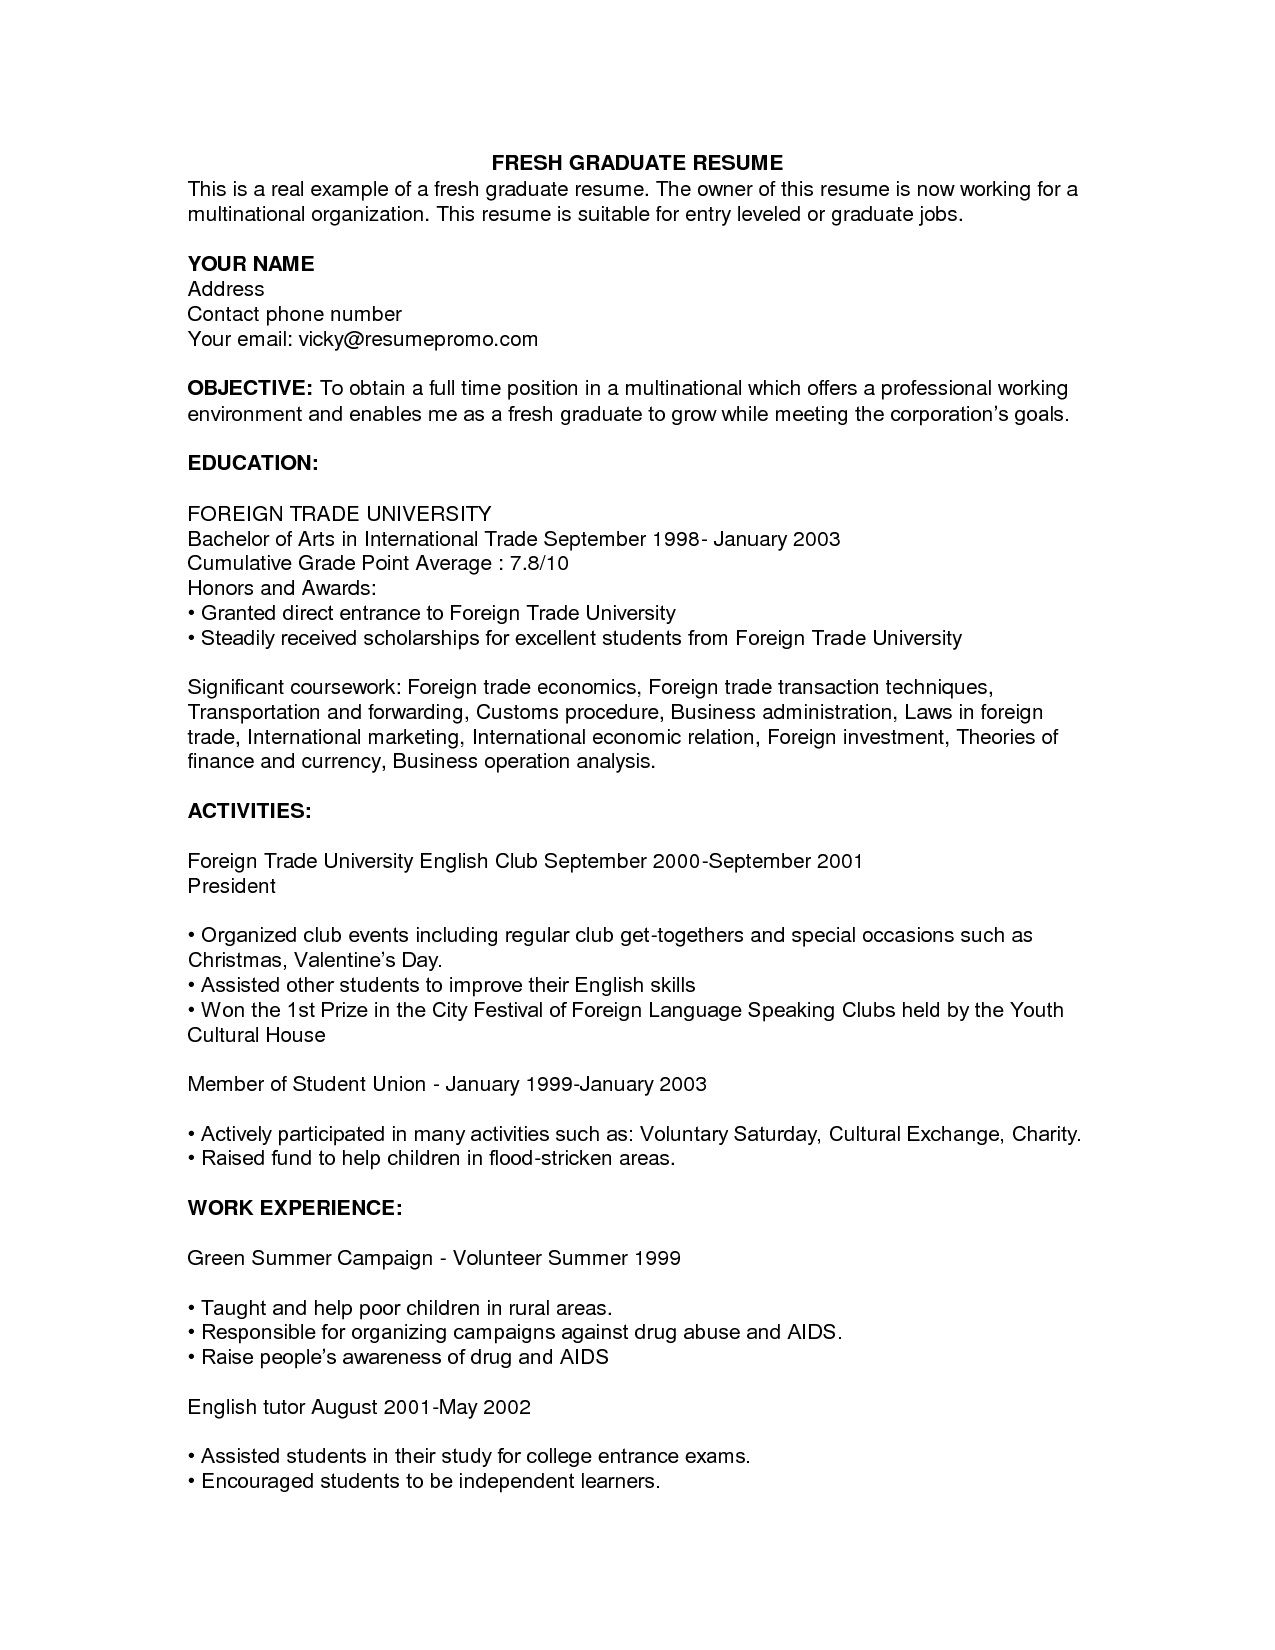 Job resume templates career you need correct more forward fresh job resume templates career you need correct more forward fresh graduate sample home design idea pinterest job resume template job resume and job madrichimfo Gallery